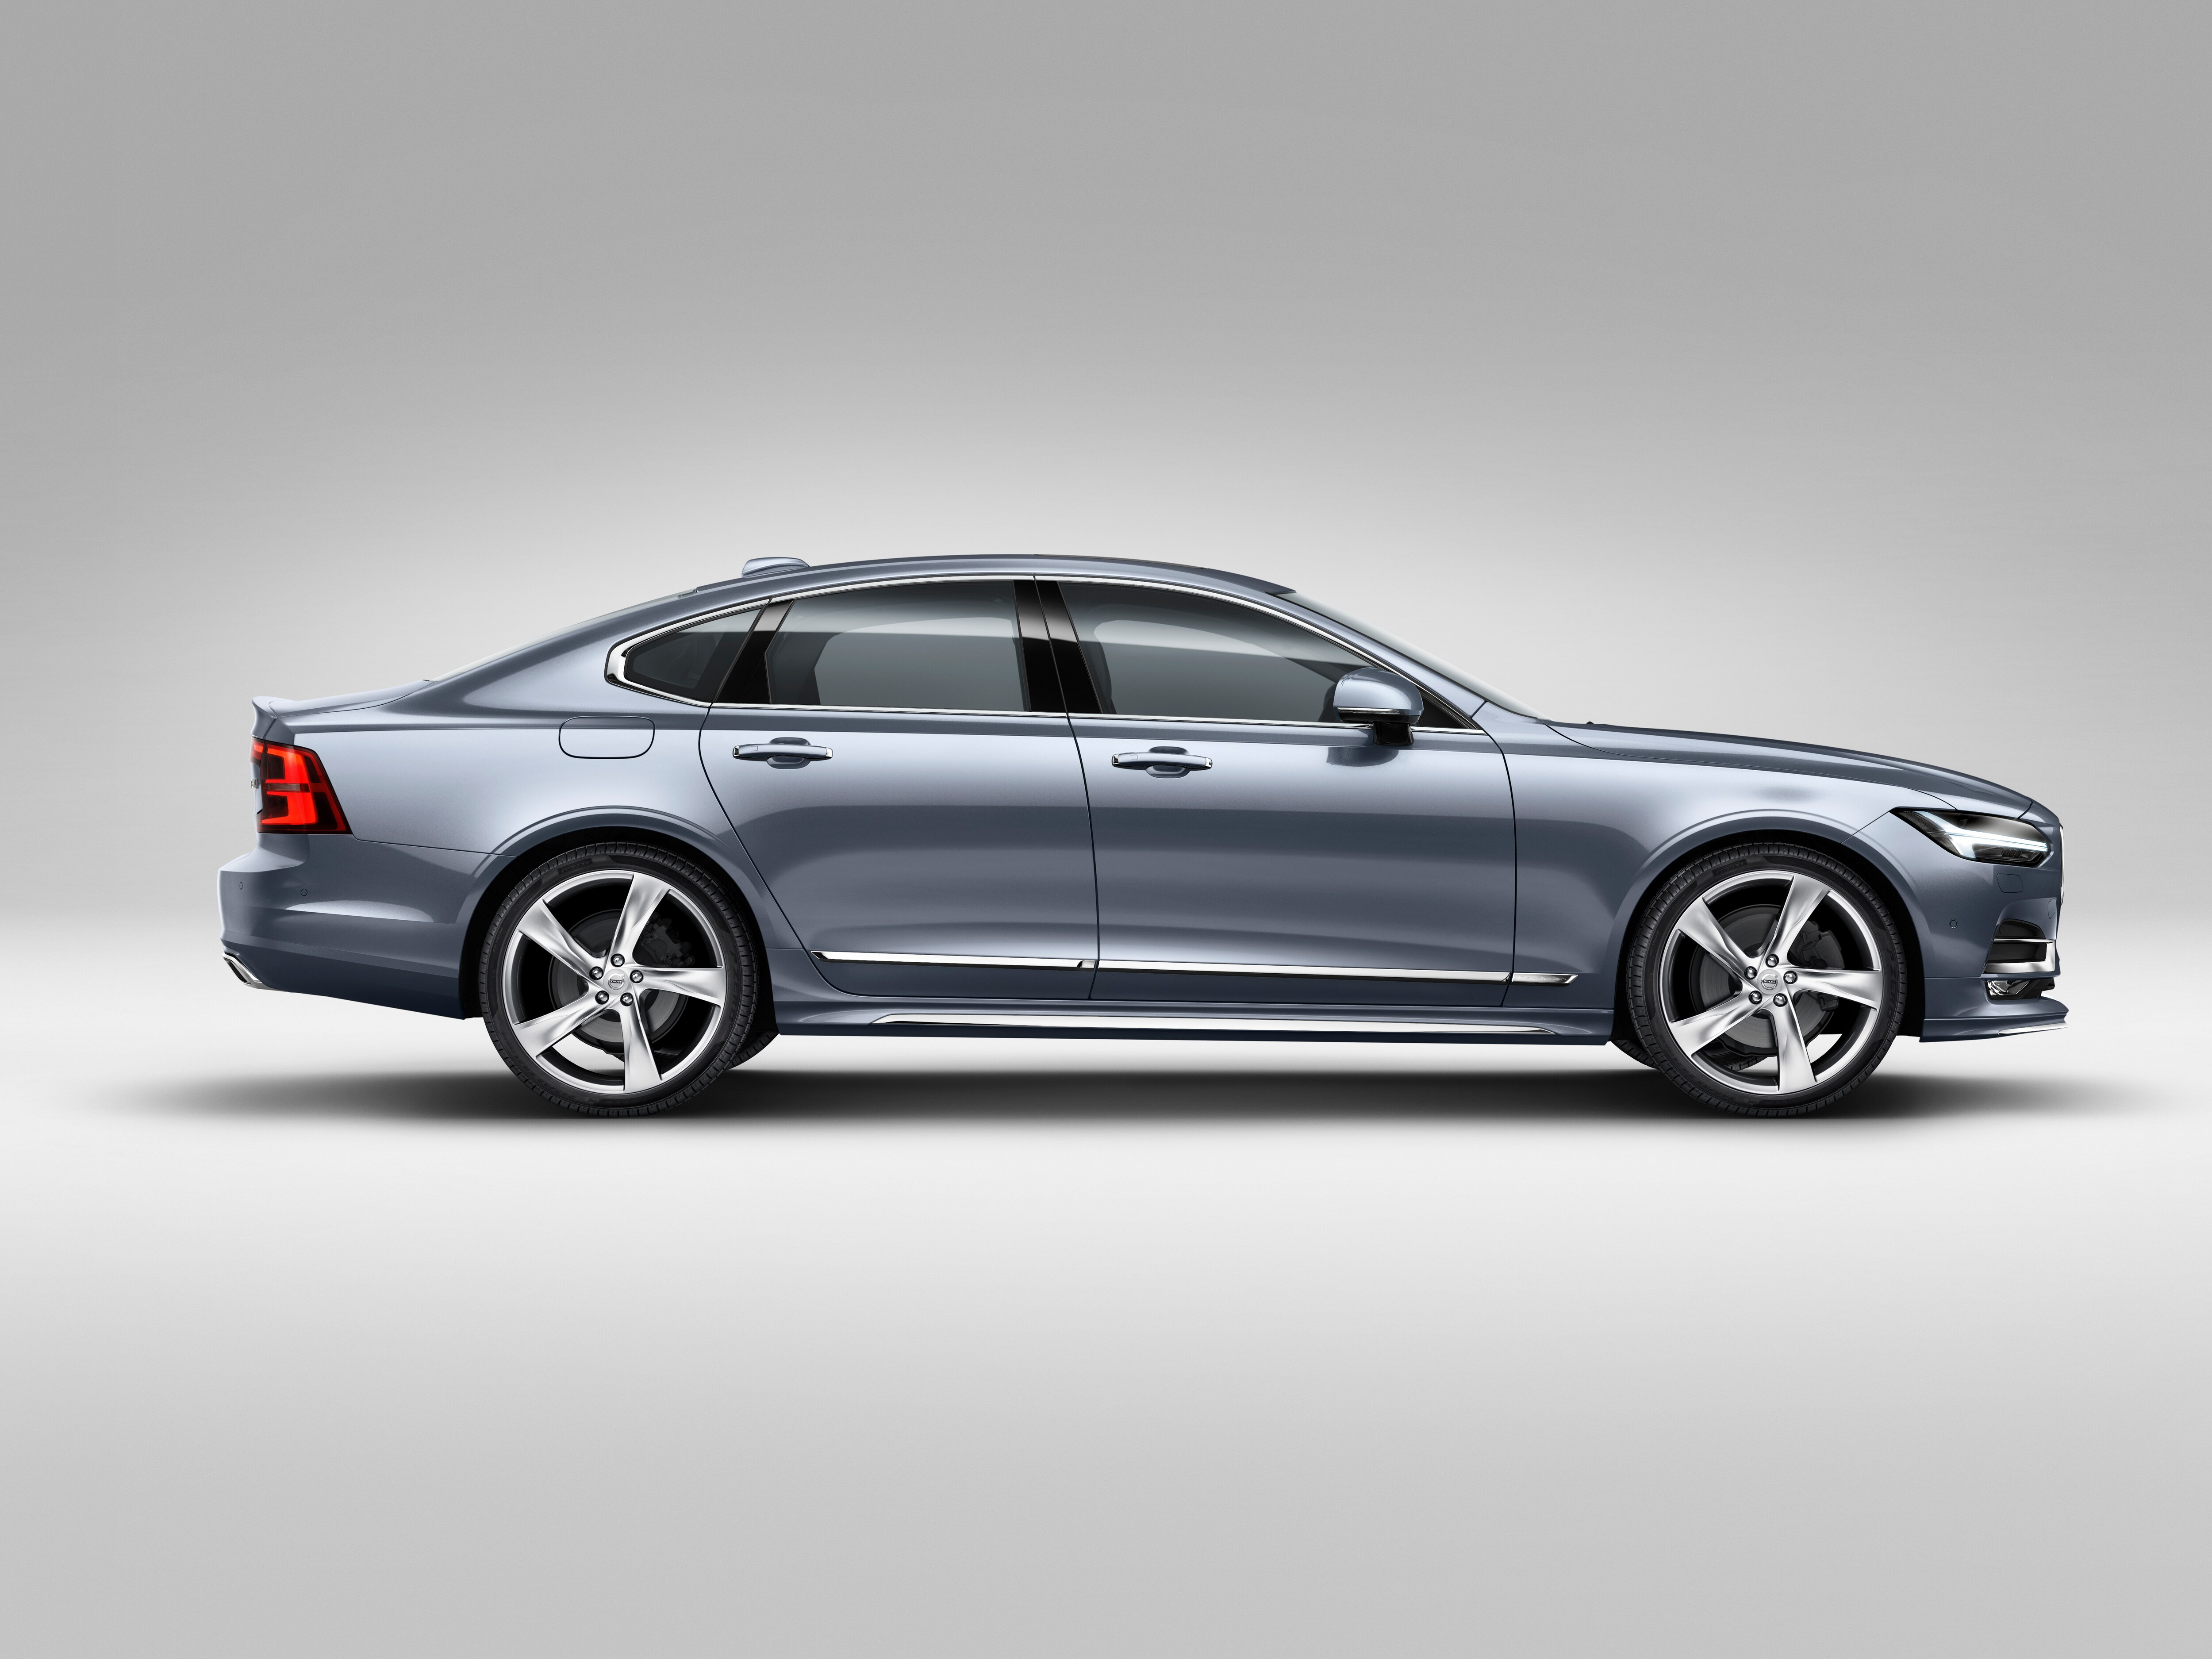 Side view of the elegant and refined Volvo S90 Inscription